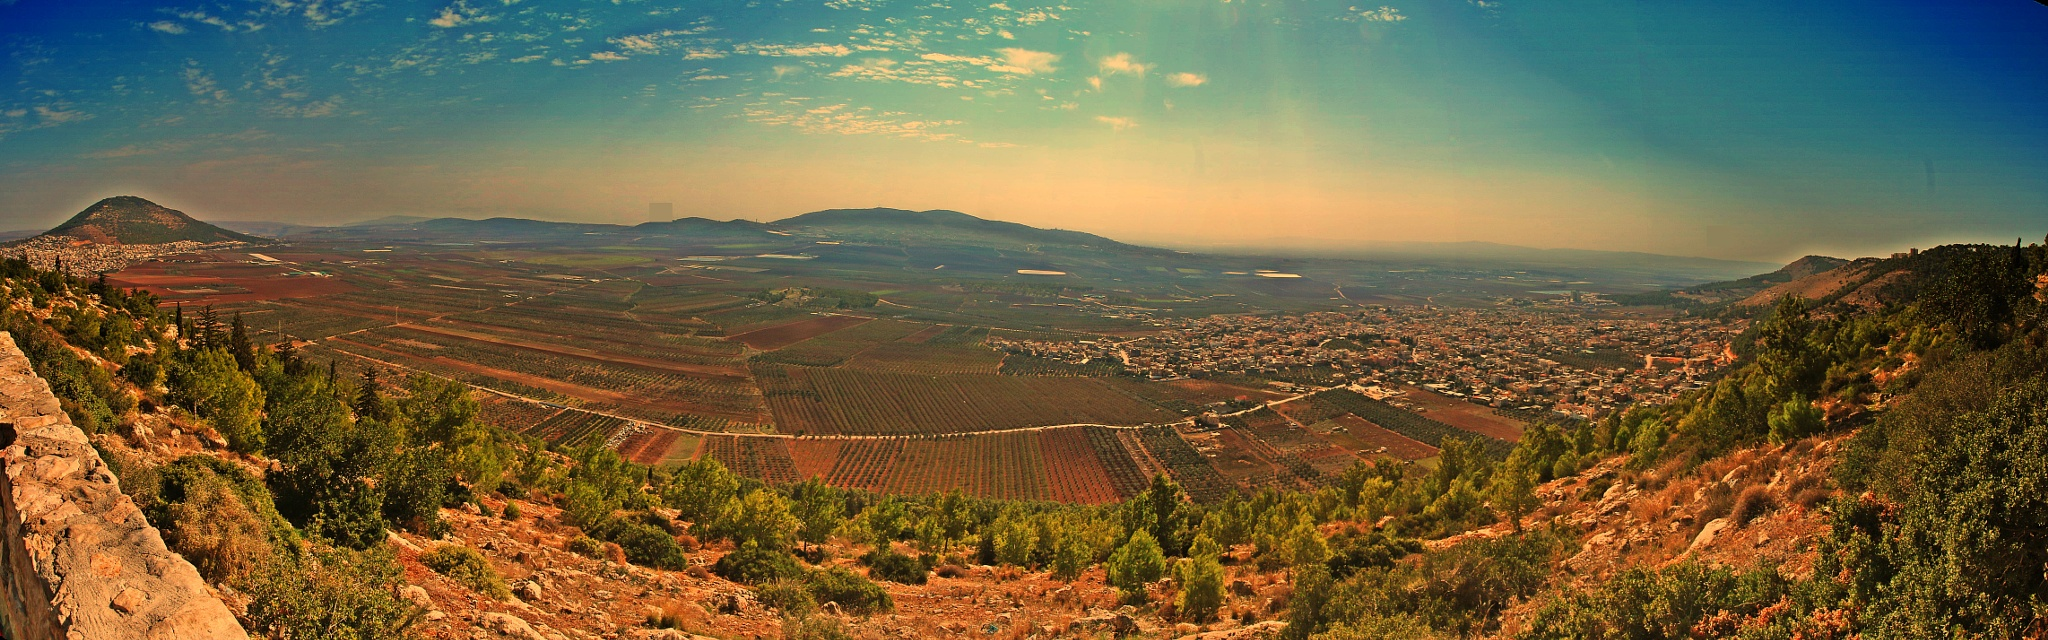 Panorama ....Between Mount Tabor to Mount Precipice. by ITZIK YOTVAT